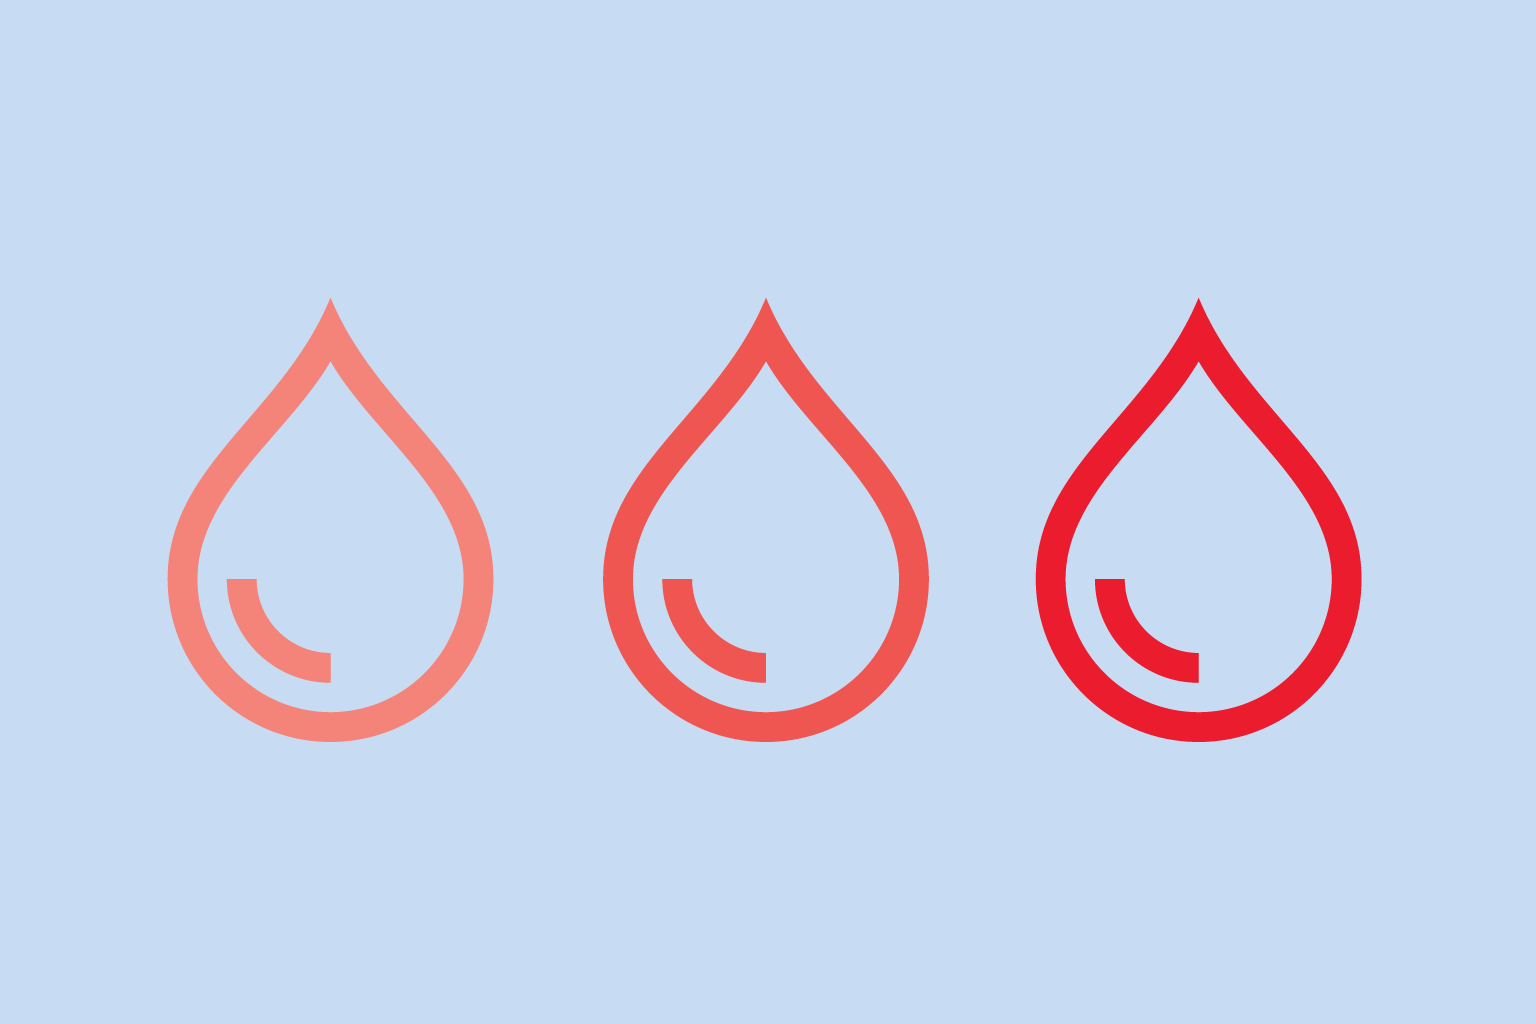 graphic showing 3 blood drops